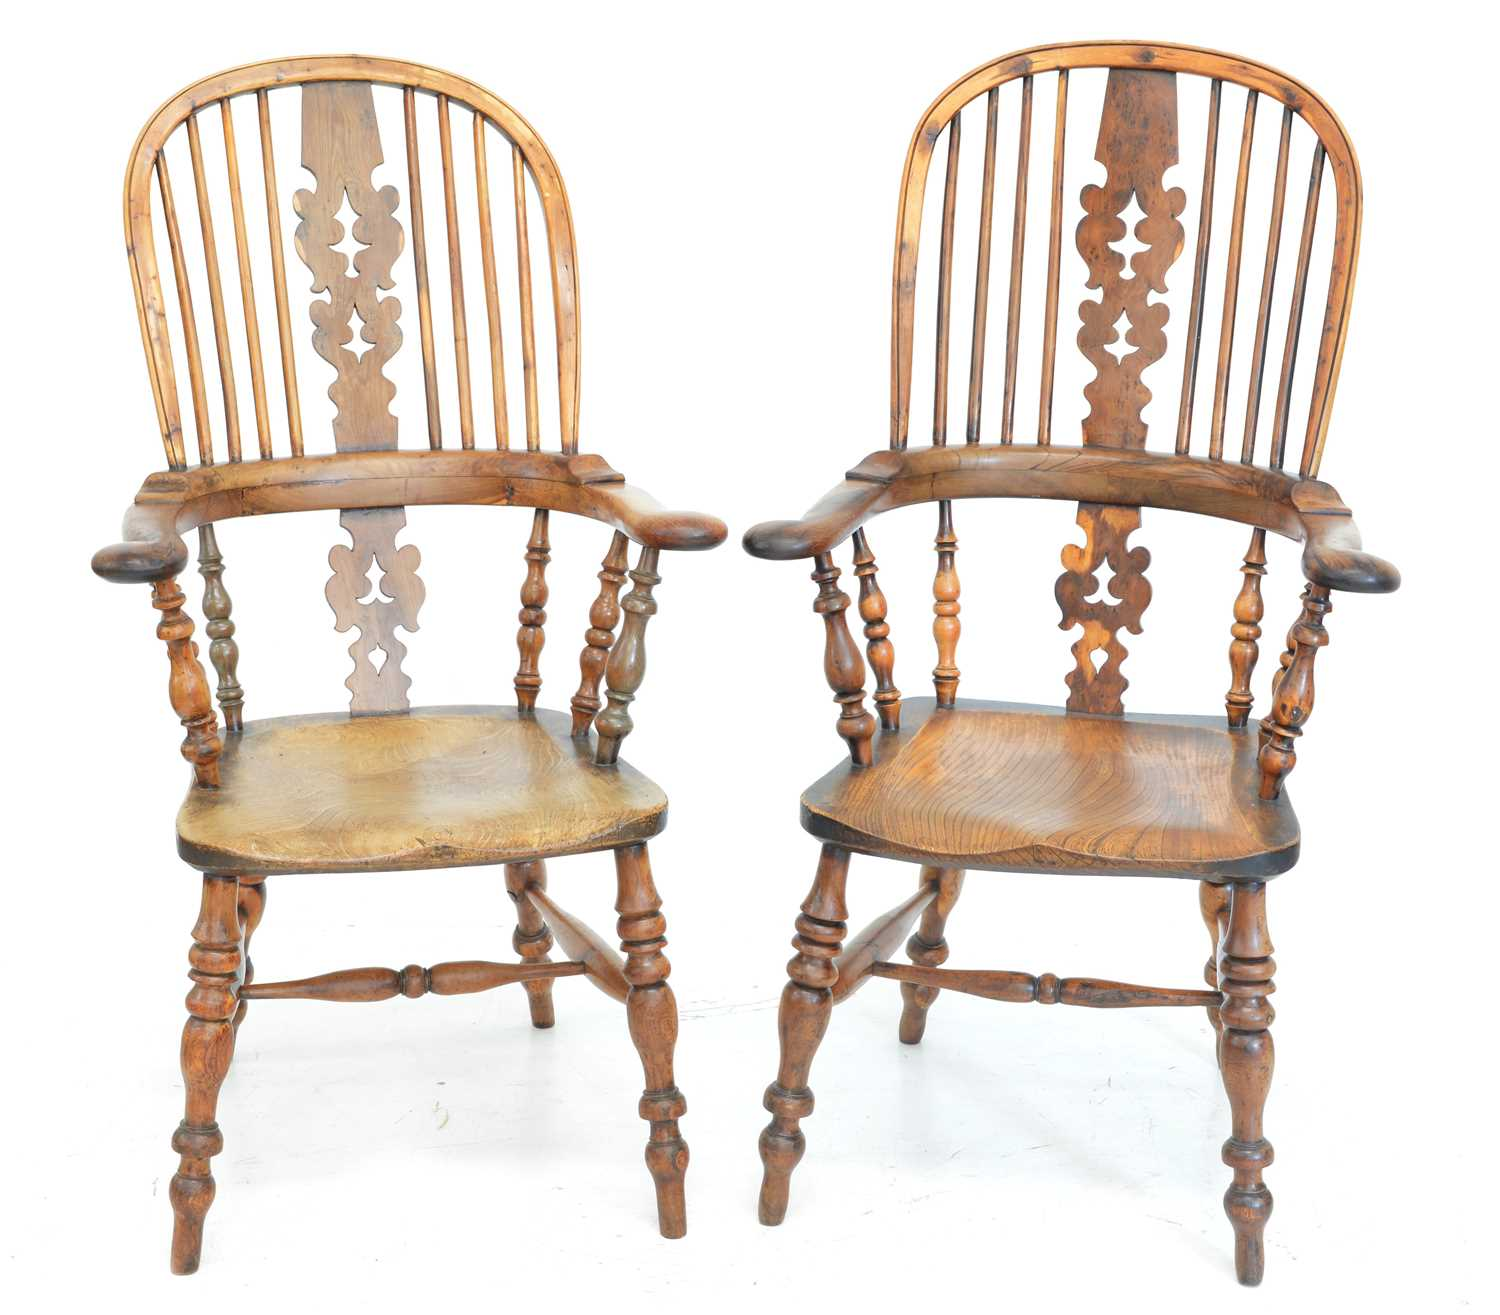 370 - A pair of mid-19th century yew wood and elm hight back Windsor chairs